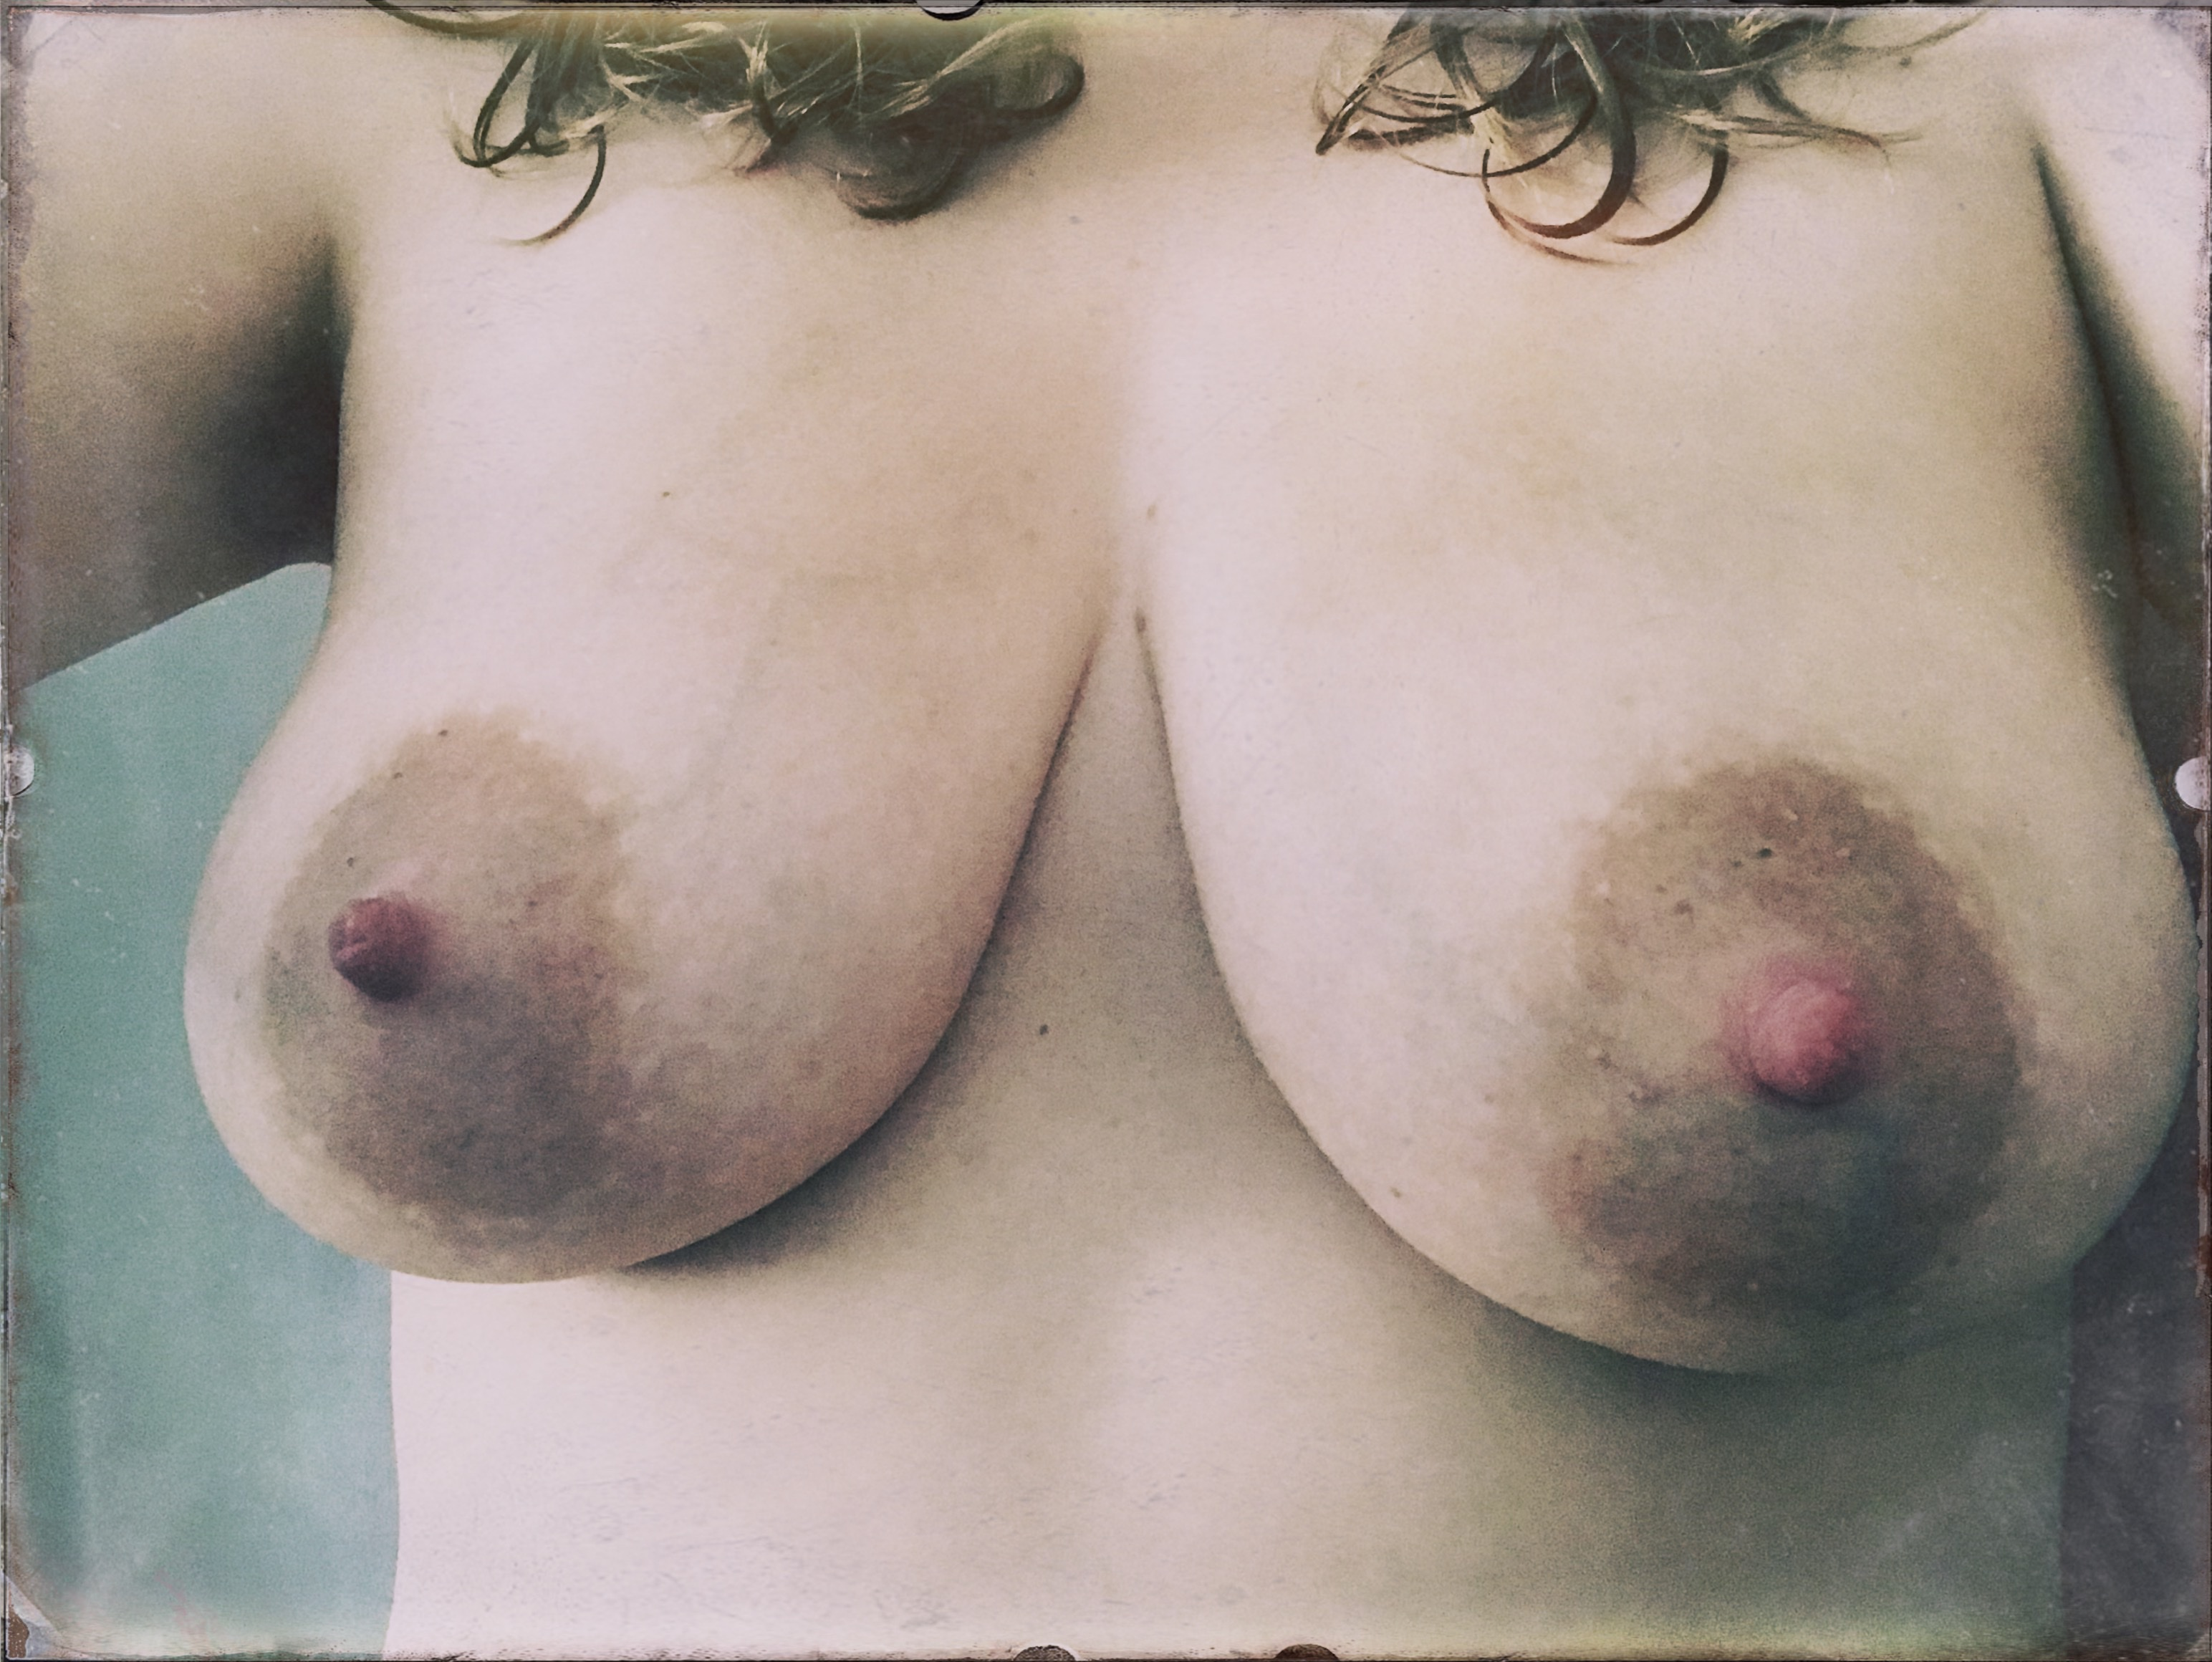 A photo of my naked breasts as a thank you for donating